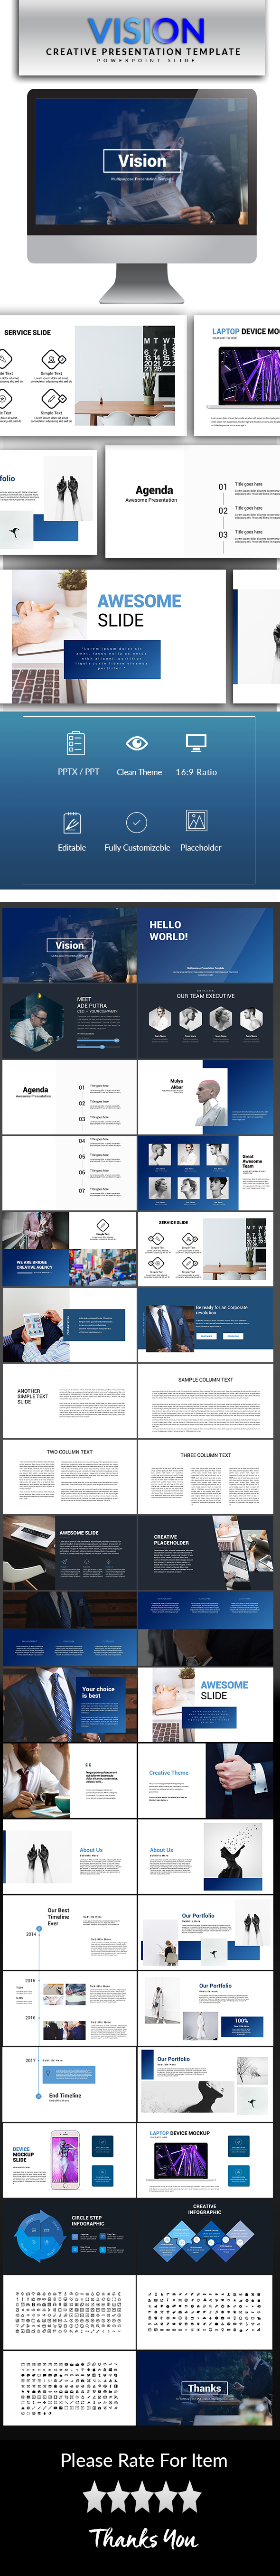 Vision Powerpoint Template - PowerPoint Templates Presentation Templates